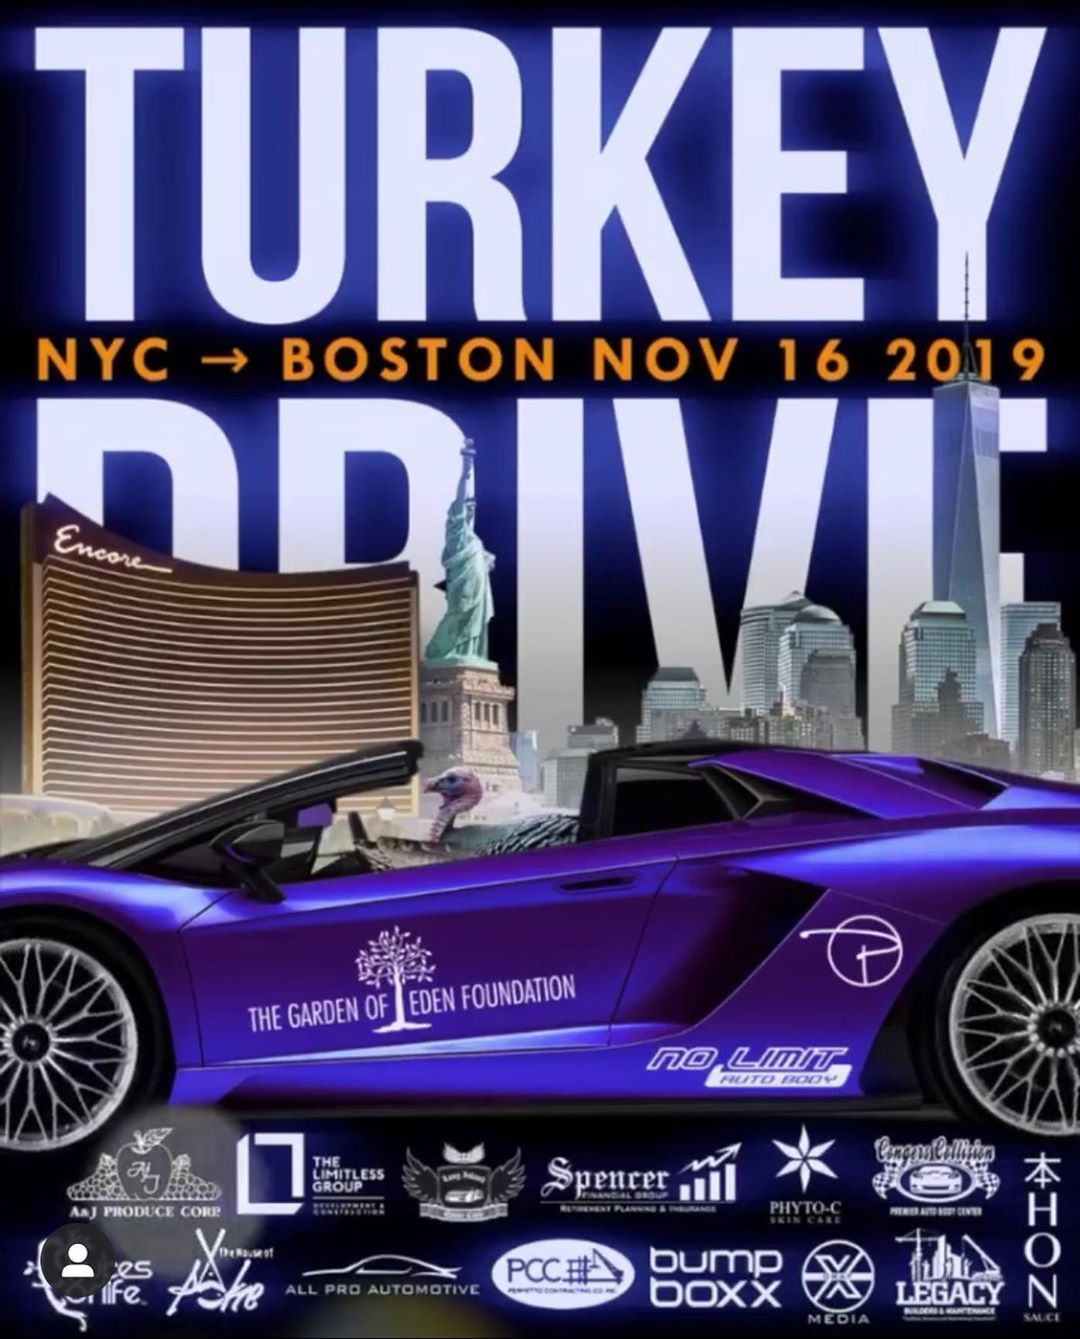 This Is Our 100 Post Since Honsauce Was Launched And To Top That This Is A Post Where A Bunch Of Amazing People Come Together And Do A Lamborghini Nyc Legacy